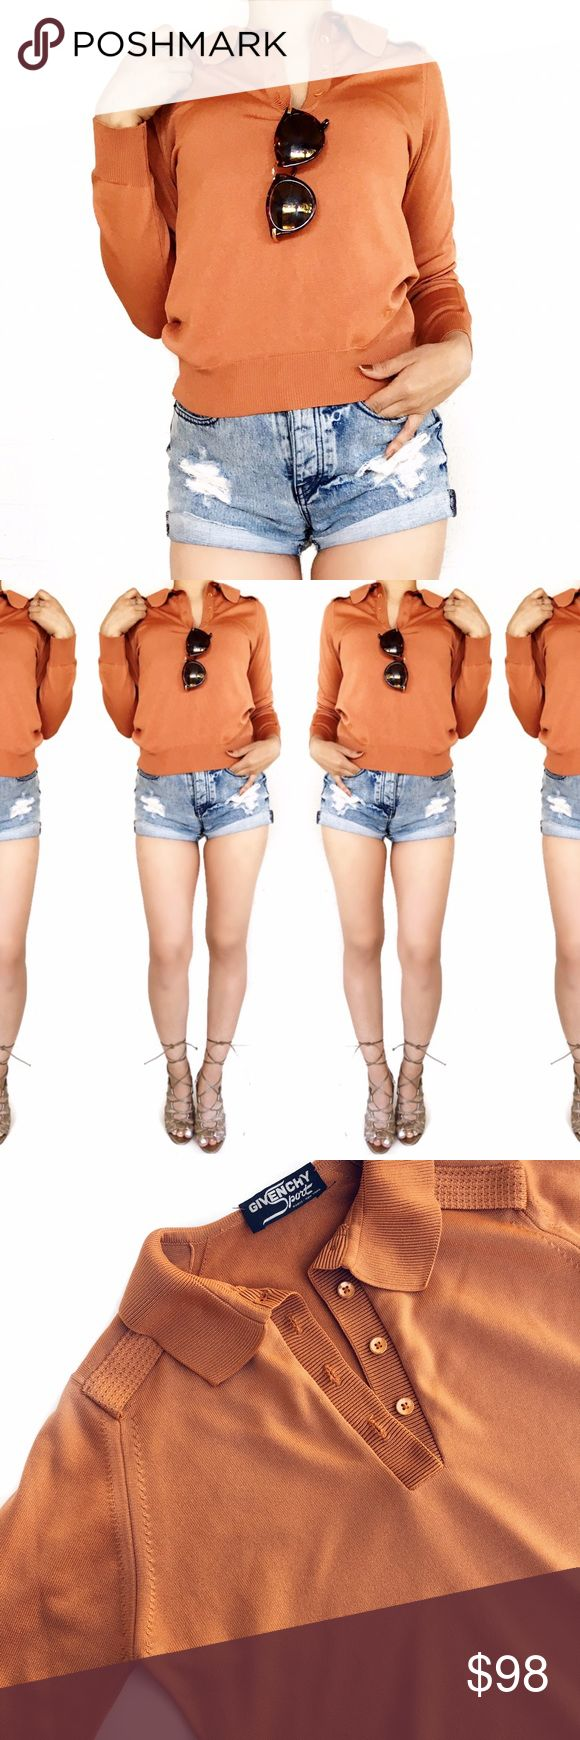 Vintage givenchy burnt orange military style top Super chic! No trades. Always open to offers. All photos are of actual item. Givenchy Tops